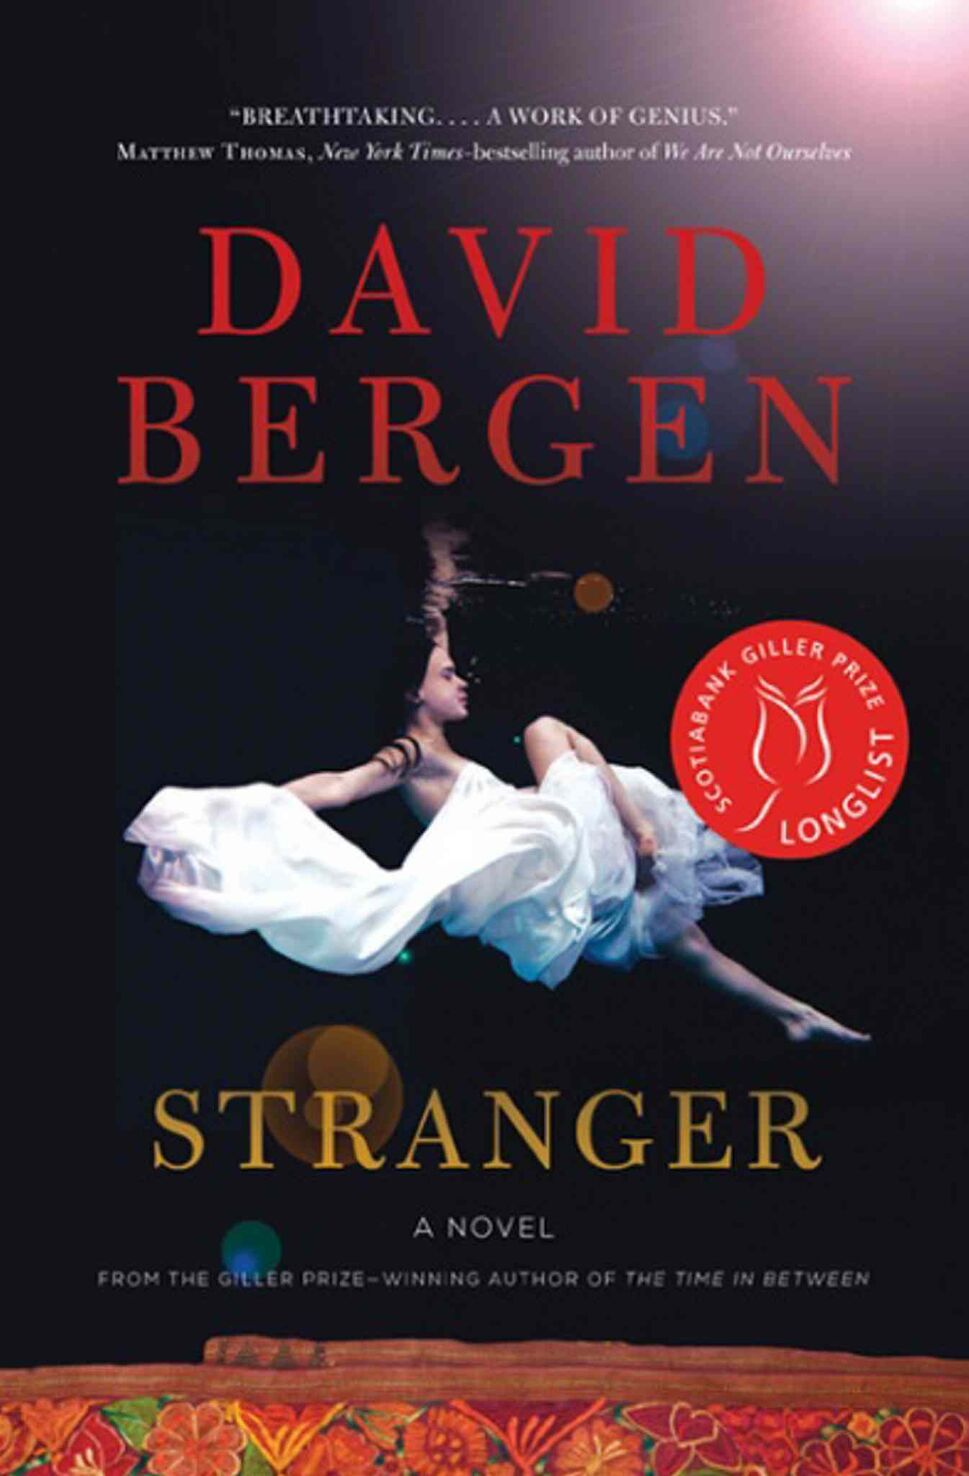 <h3>Stranger</h3> <br/> By David Bergen <br/> <strong>David Bergen's Stranger is set in Guatemala and an ominous, militarized near-future America. This excellent novel can be read as a prophetic denunciation of the ills that follow systemic classism and racism south of the border, but it does not sacrifice story to a political agenda.</strong> <br/> — Julienne Isaacs